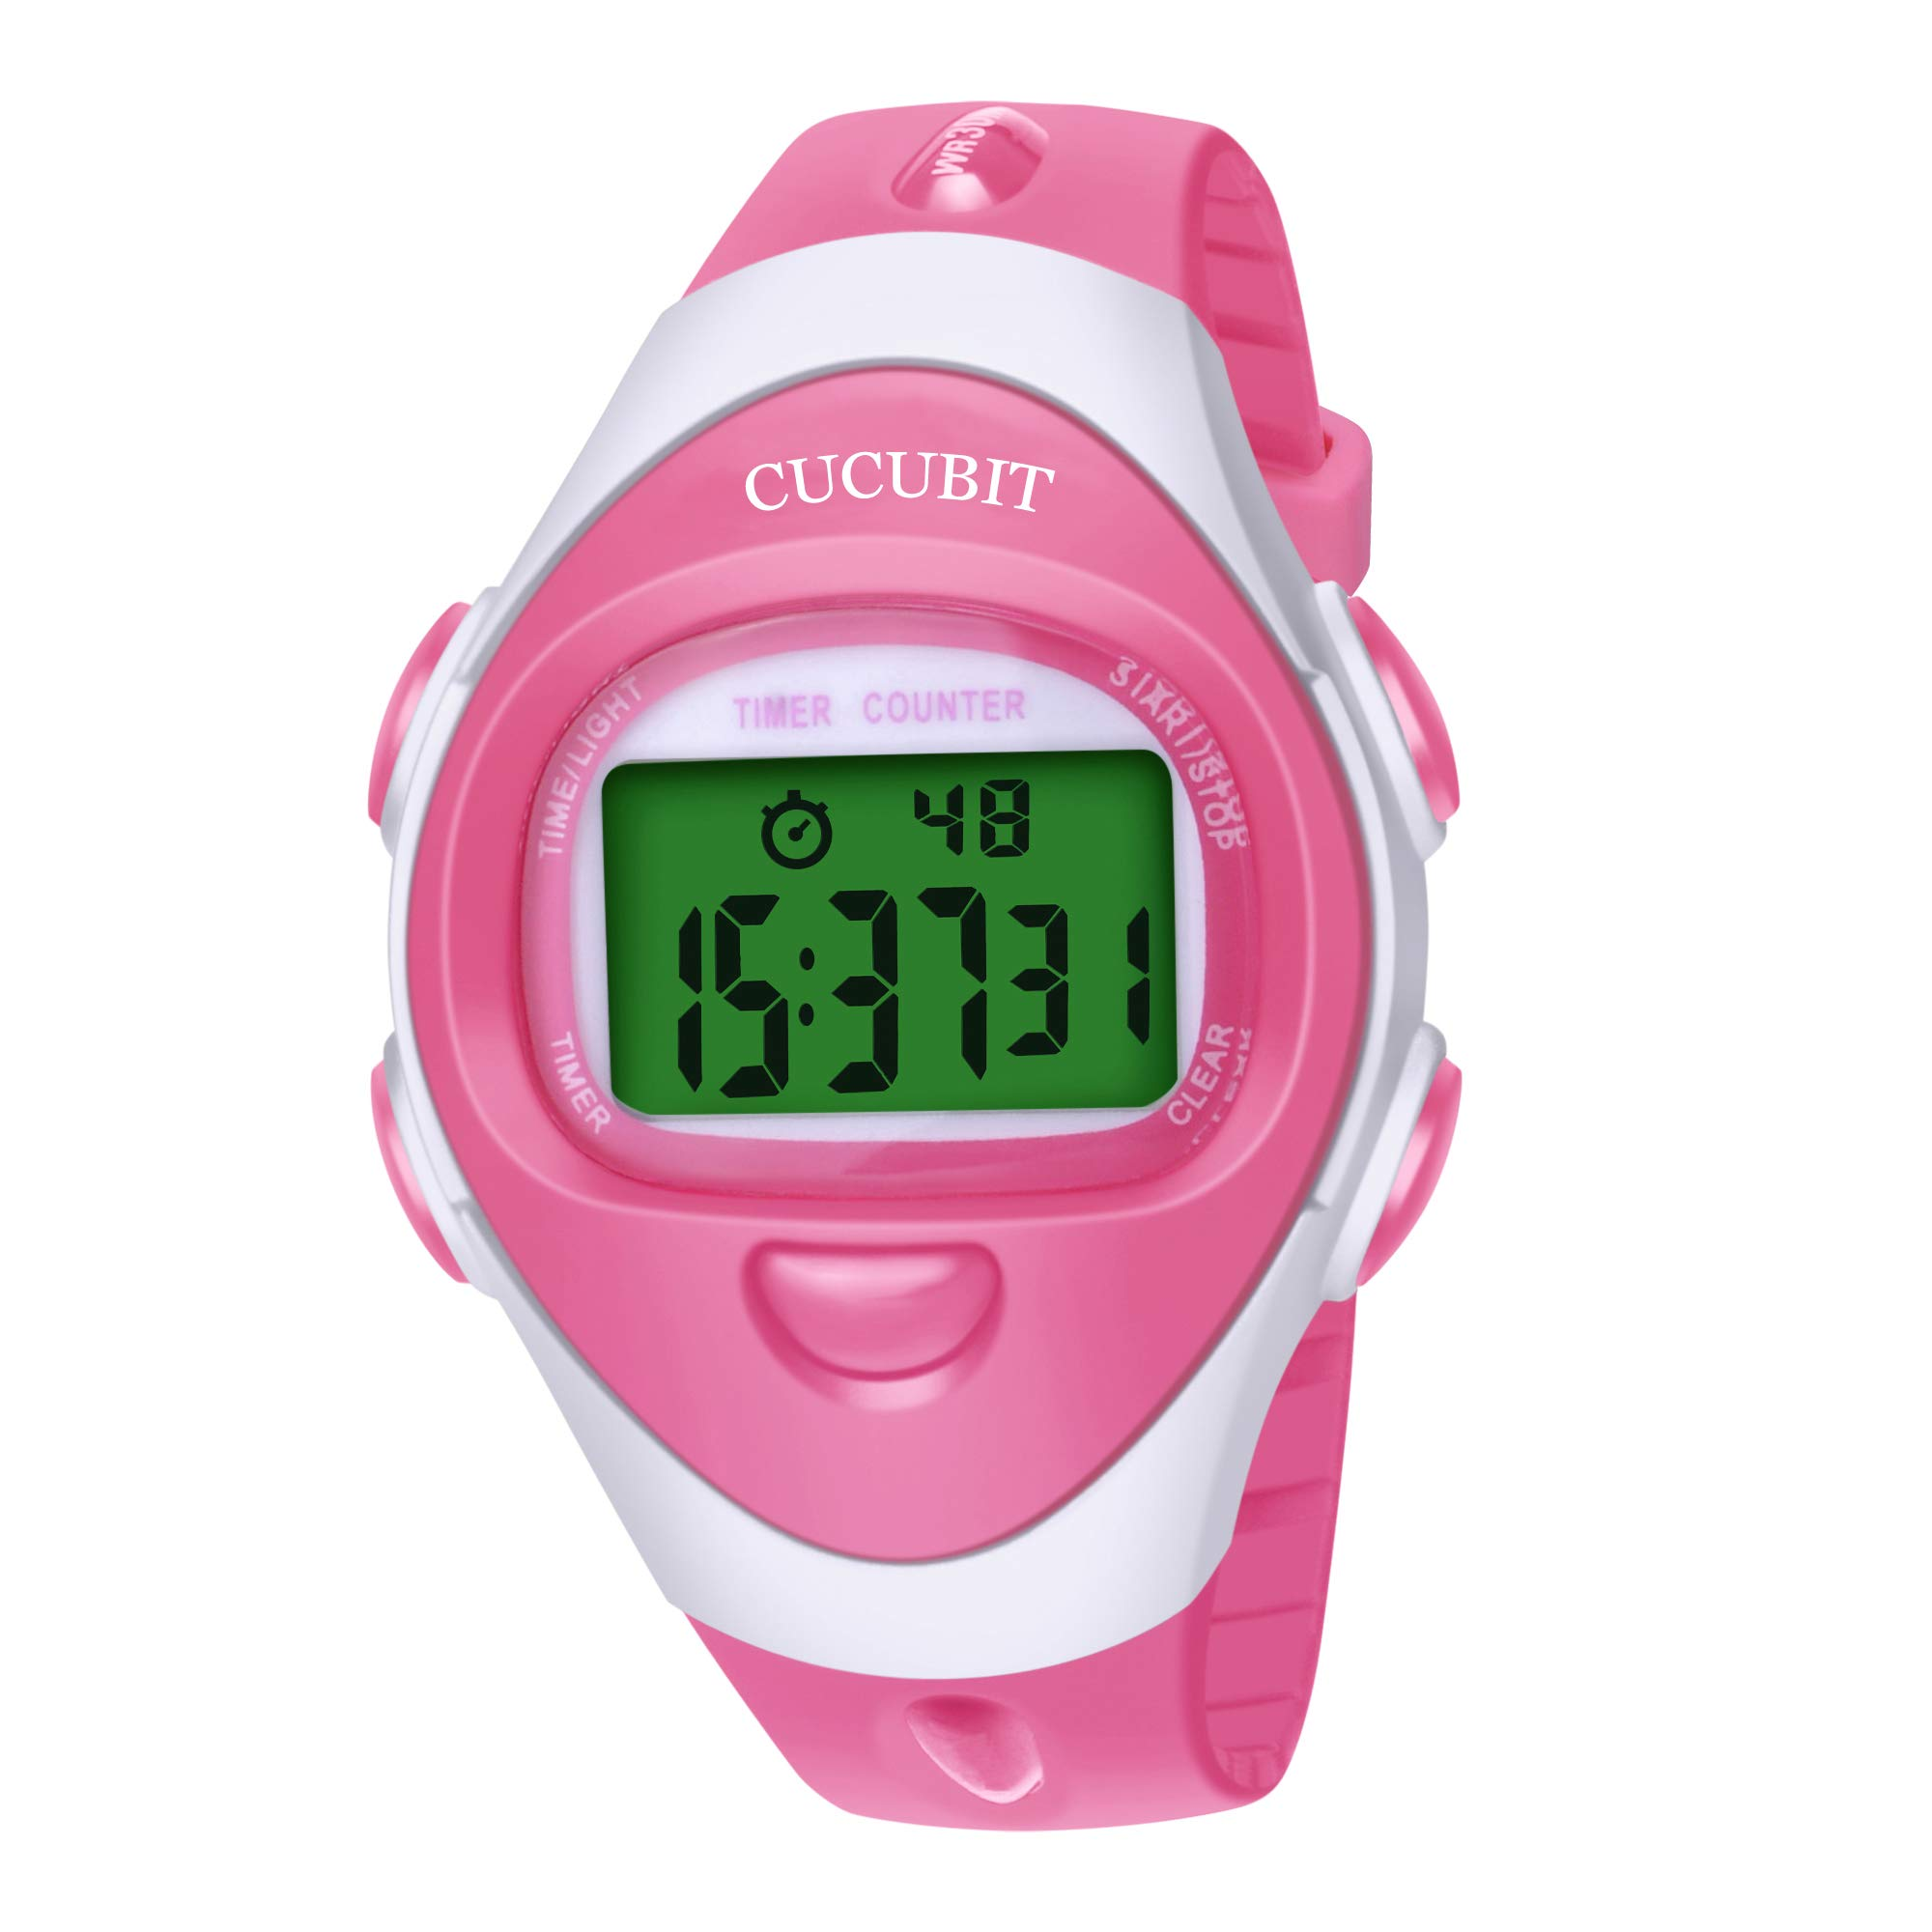 Baby Reminder Watch for Toilet Potty Training Water Resistant Toddler Timer Watches(Pink)